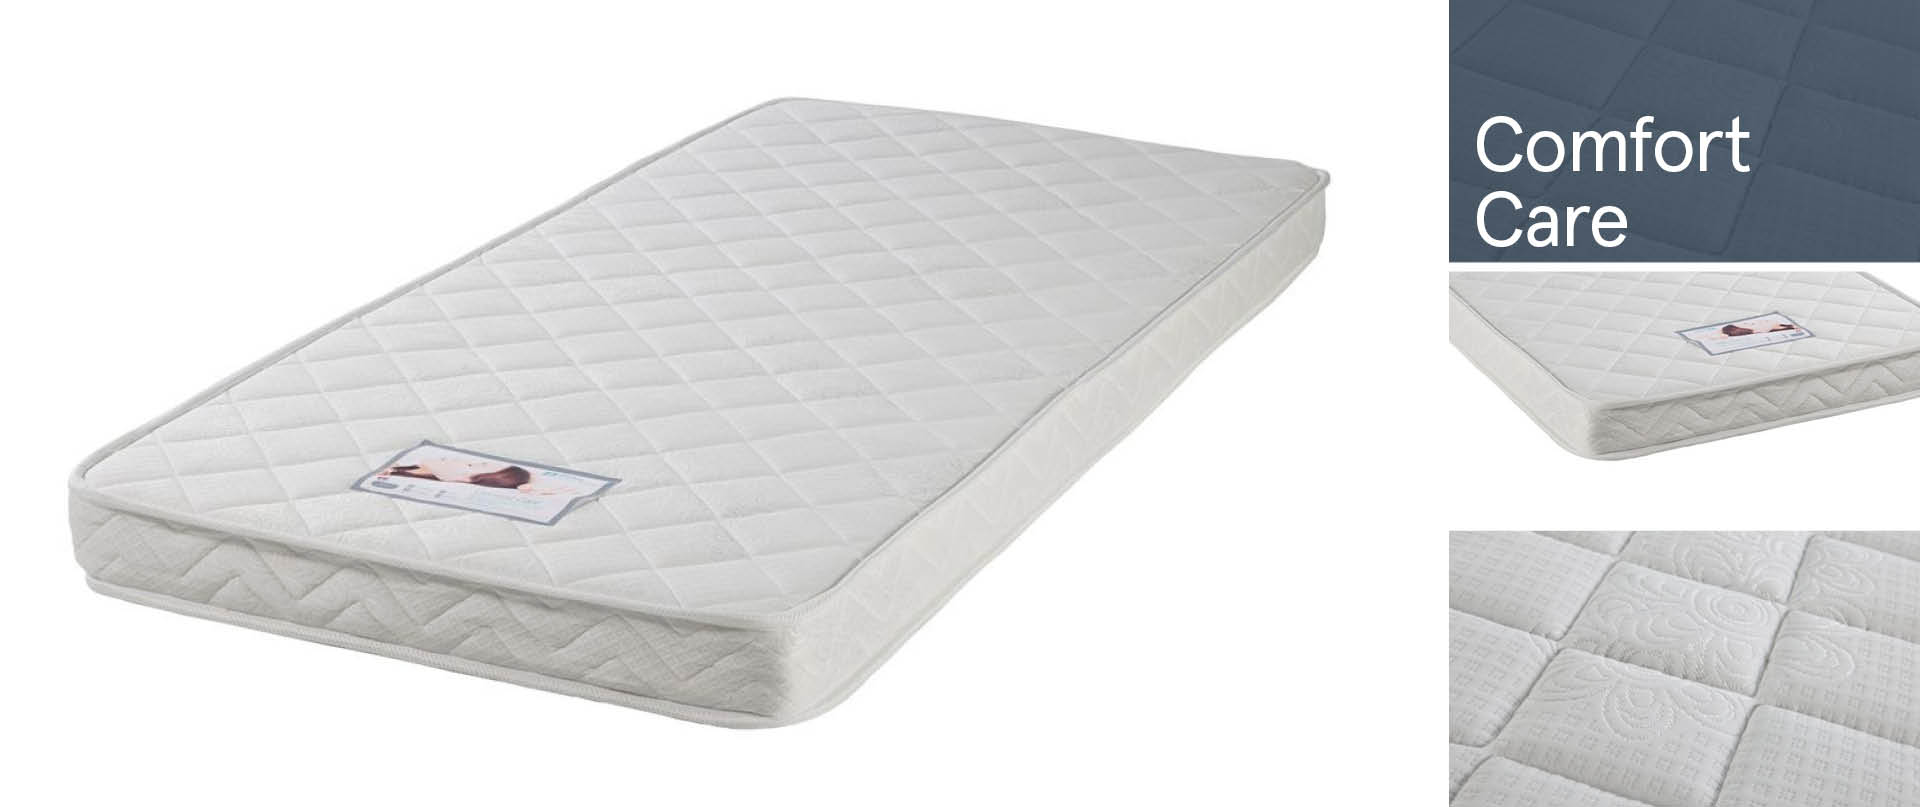 Comfort Care Mattresses Ranges